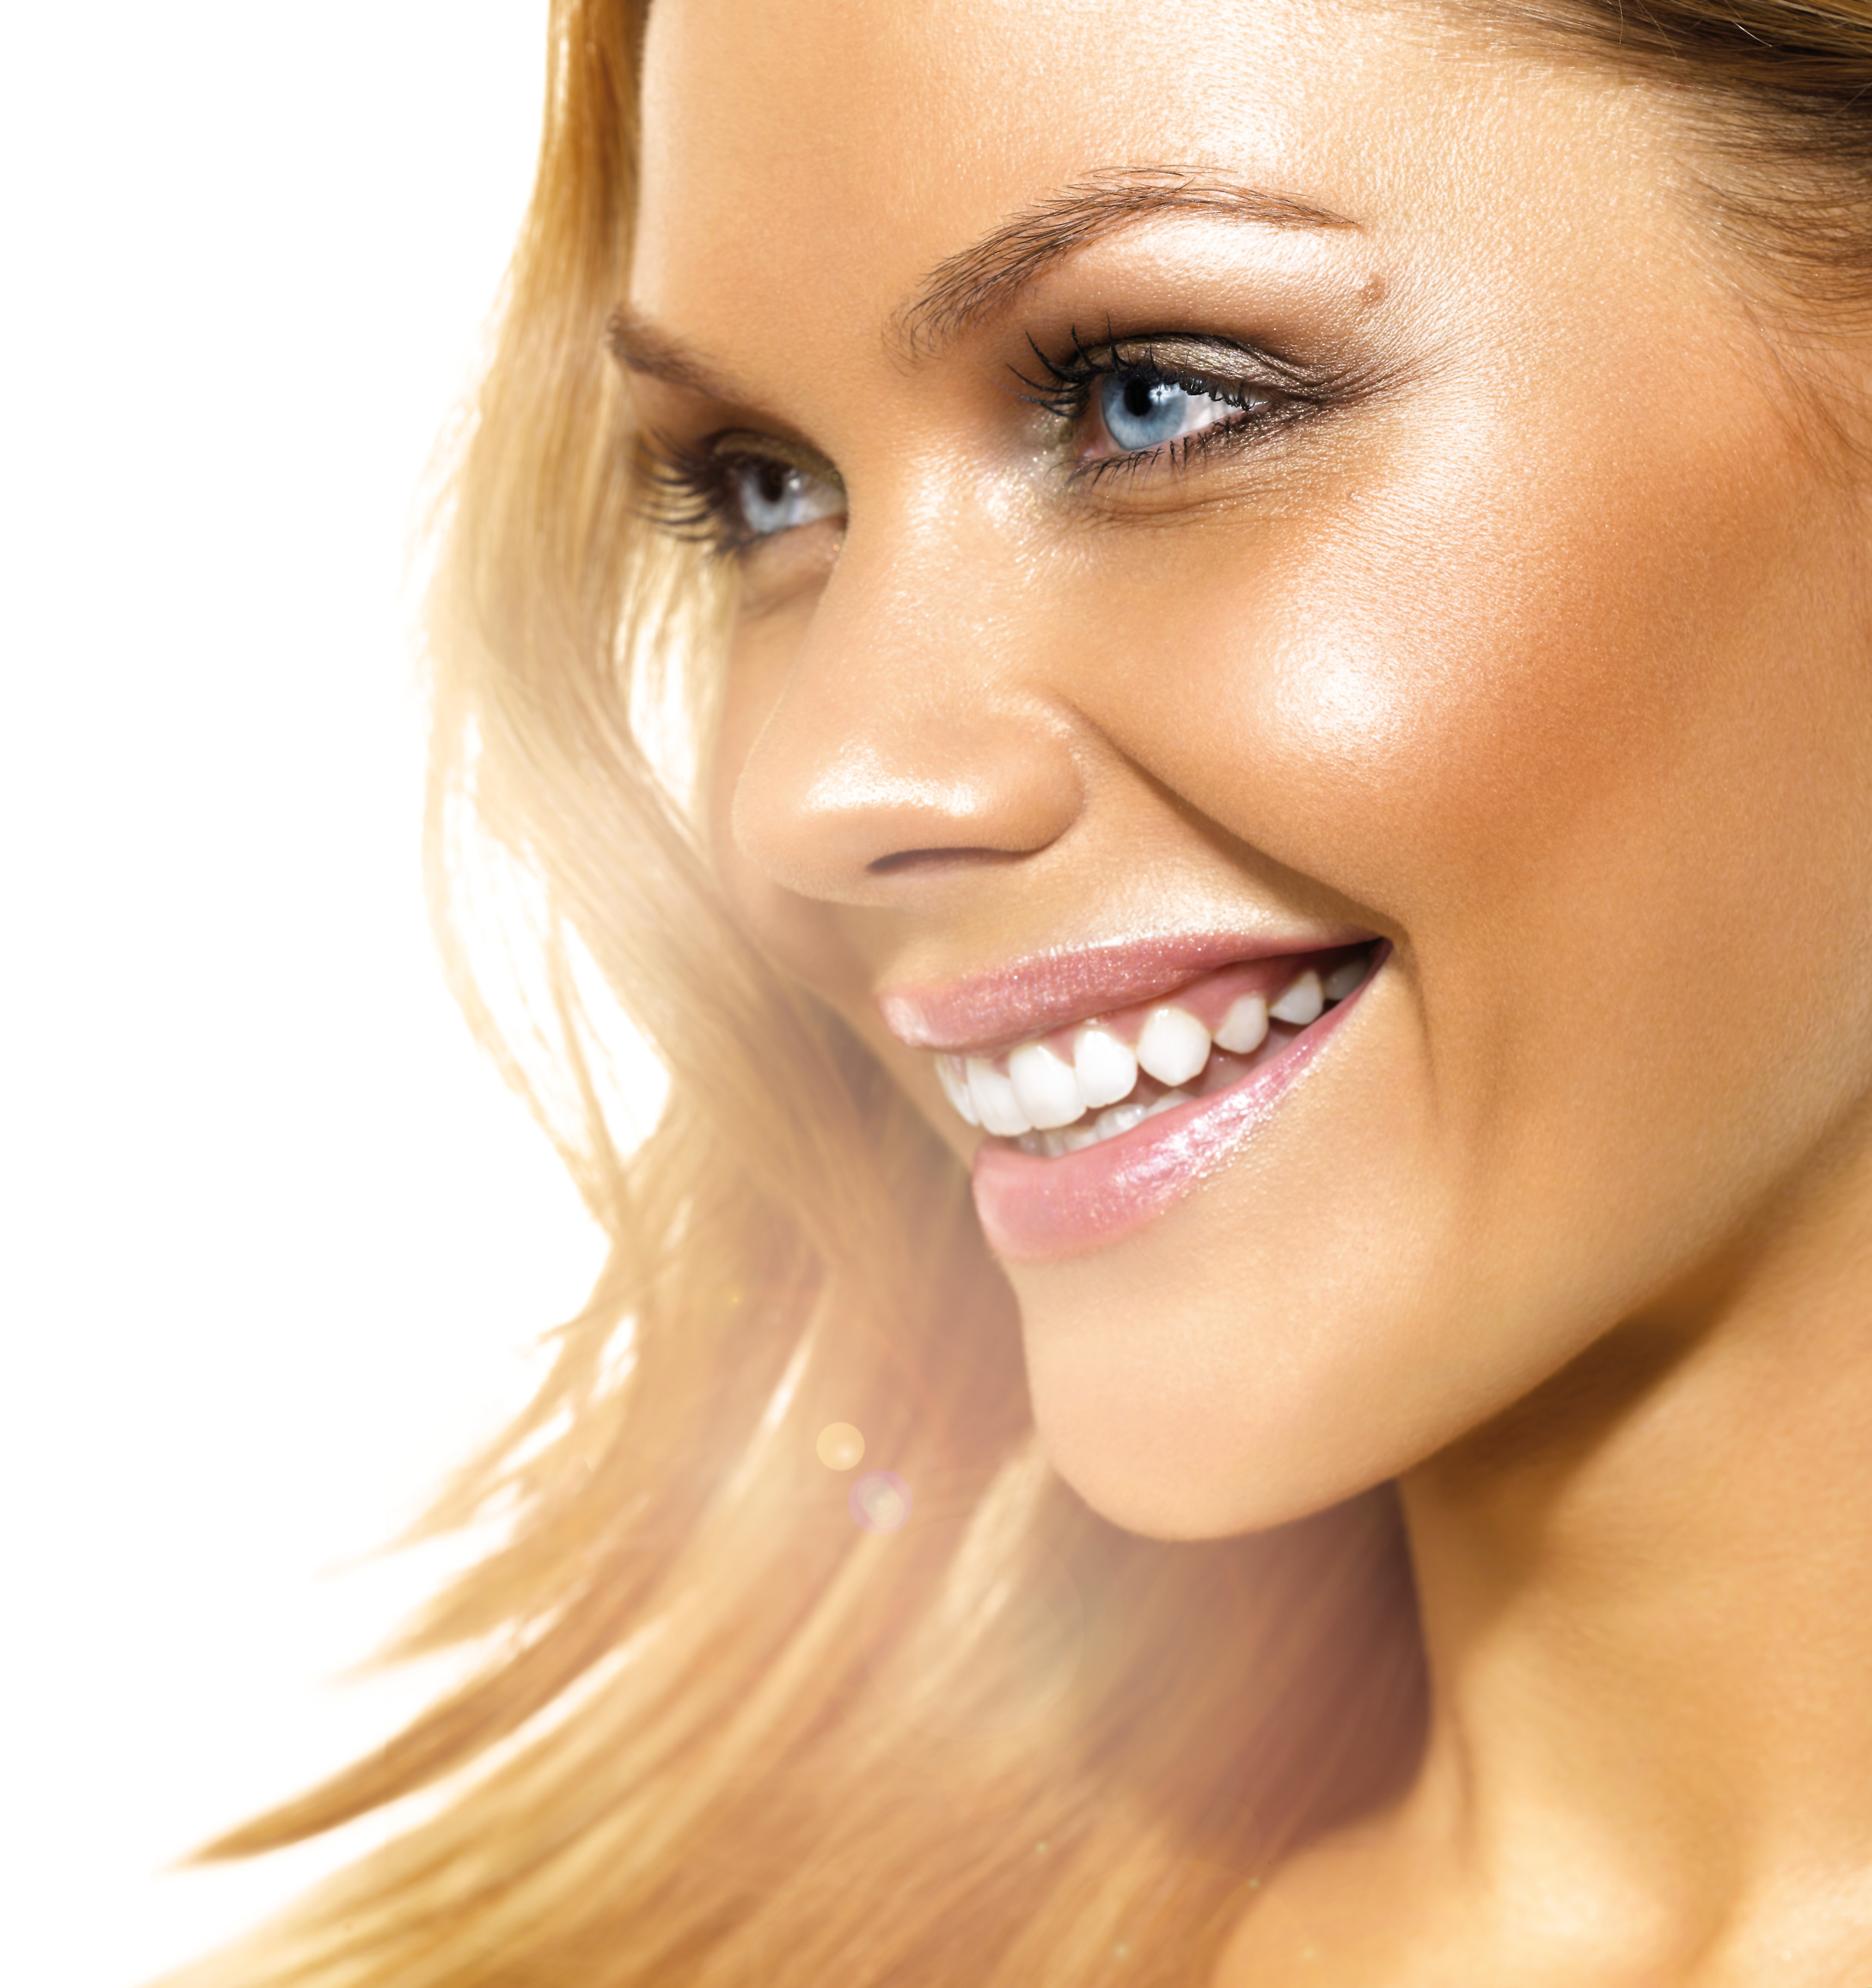 Glow Skin Care: The One Food That Can Give You Glowing Skin In Just 3 Days